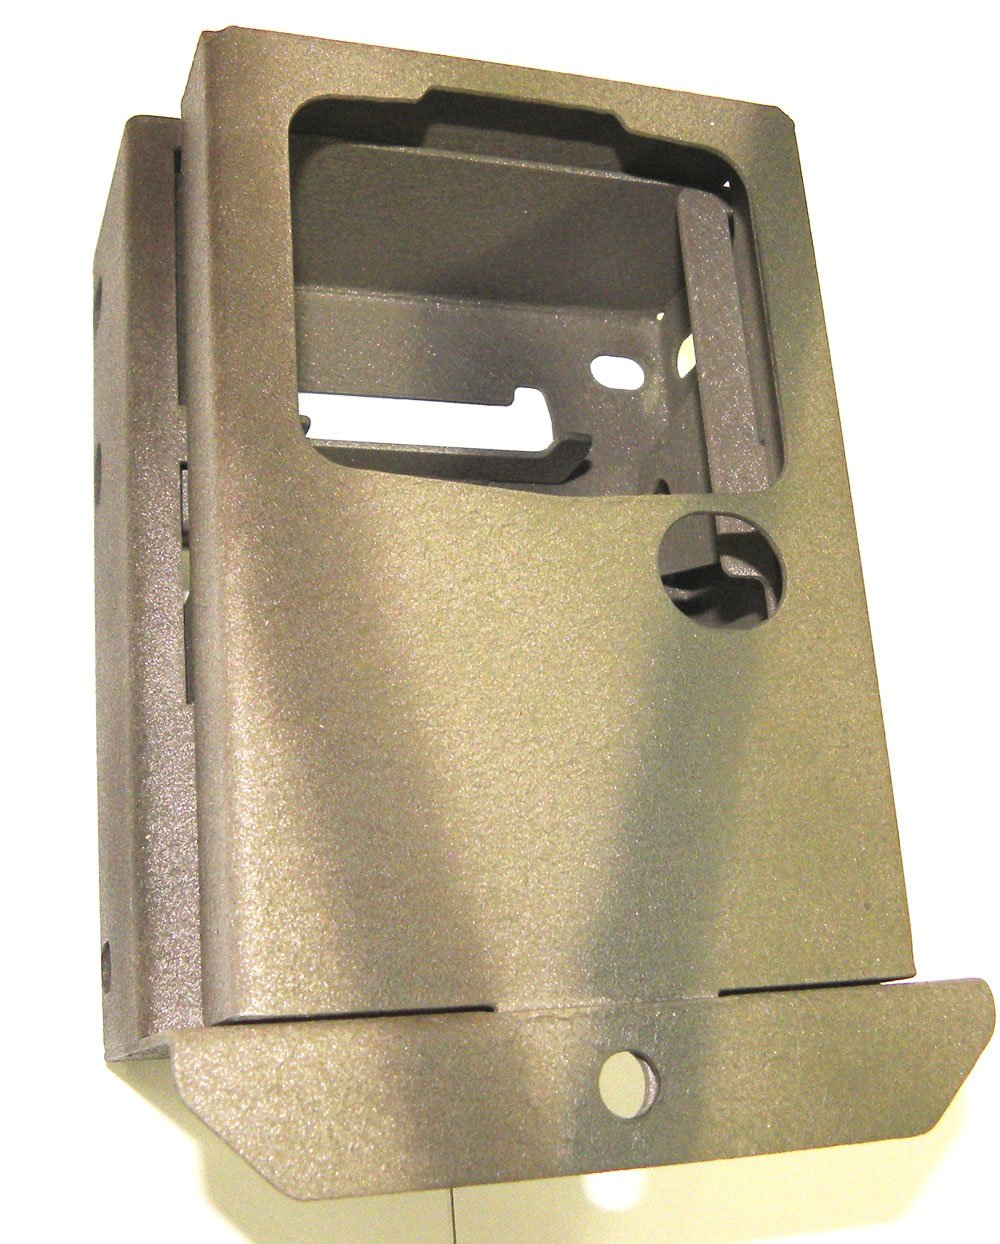 CamLockBox Security Box Compatible with Moultrie A-30 A-30i A-35 Game Trail Camera